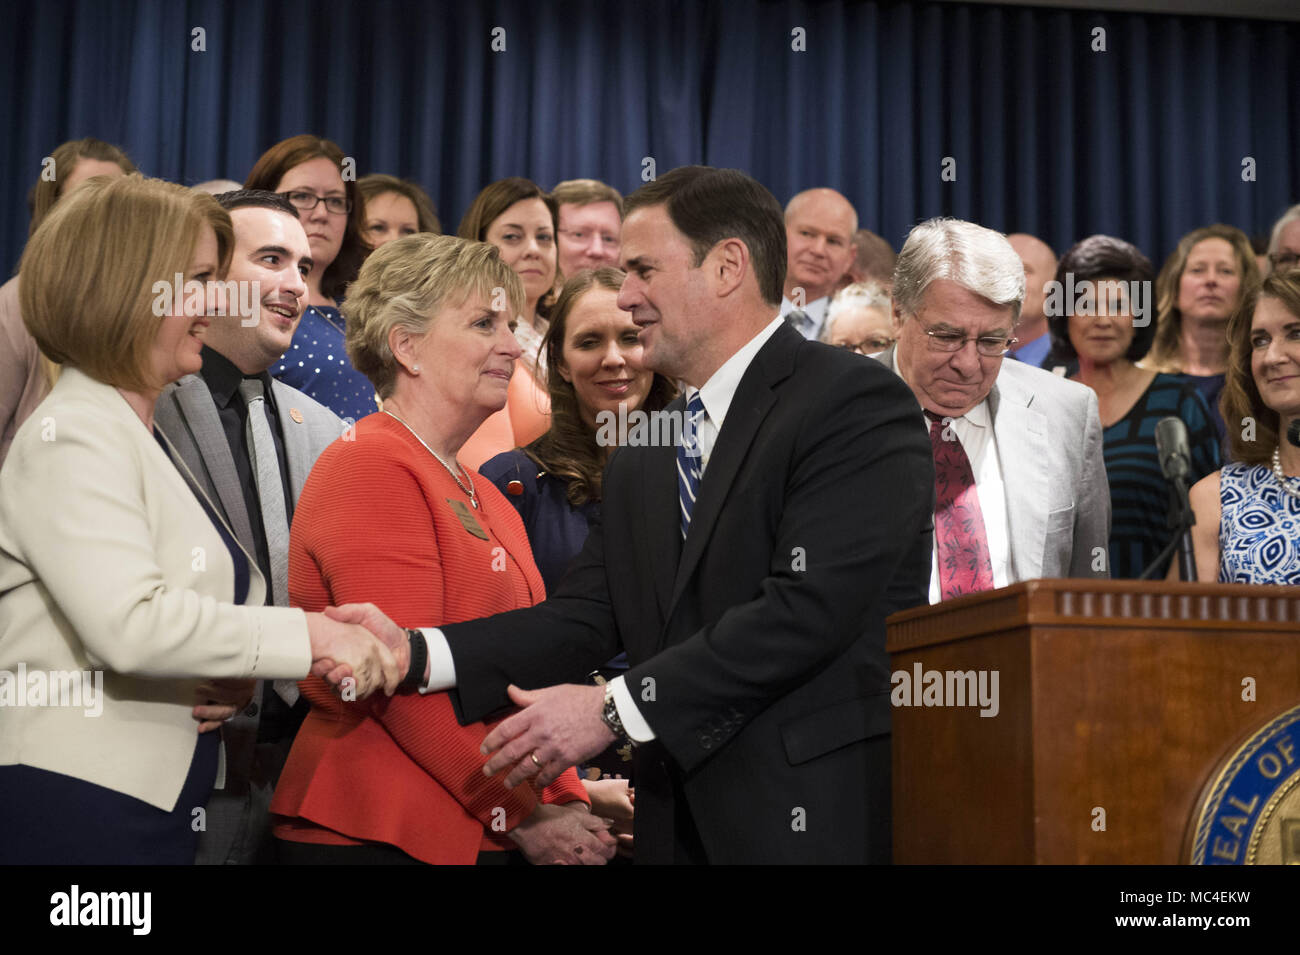 Phoenix, Arizona, USA. 12th Apr, 2018. Gov. DOUG DUCEY greets state legislators during a press conference on Thursday, at the state capitol in Phoenix, Arizona. After pressure and demonstrations by the advocacy group Arizona Educators United, Ducey announced a plan that would raise Arizona teacher salaries 20 percent by the 2020-21 school year. Credit: Ben Moffat/ZUMA Wire/Alamy Live News Stock Photo